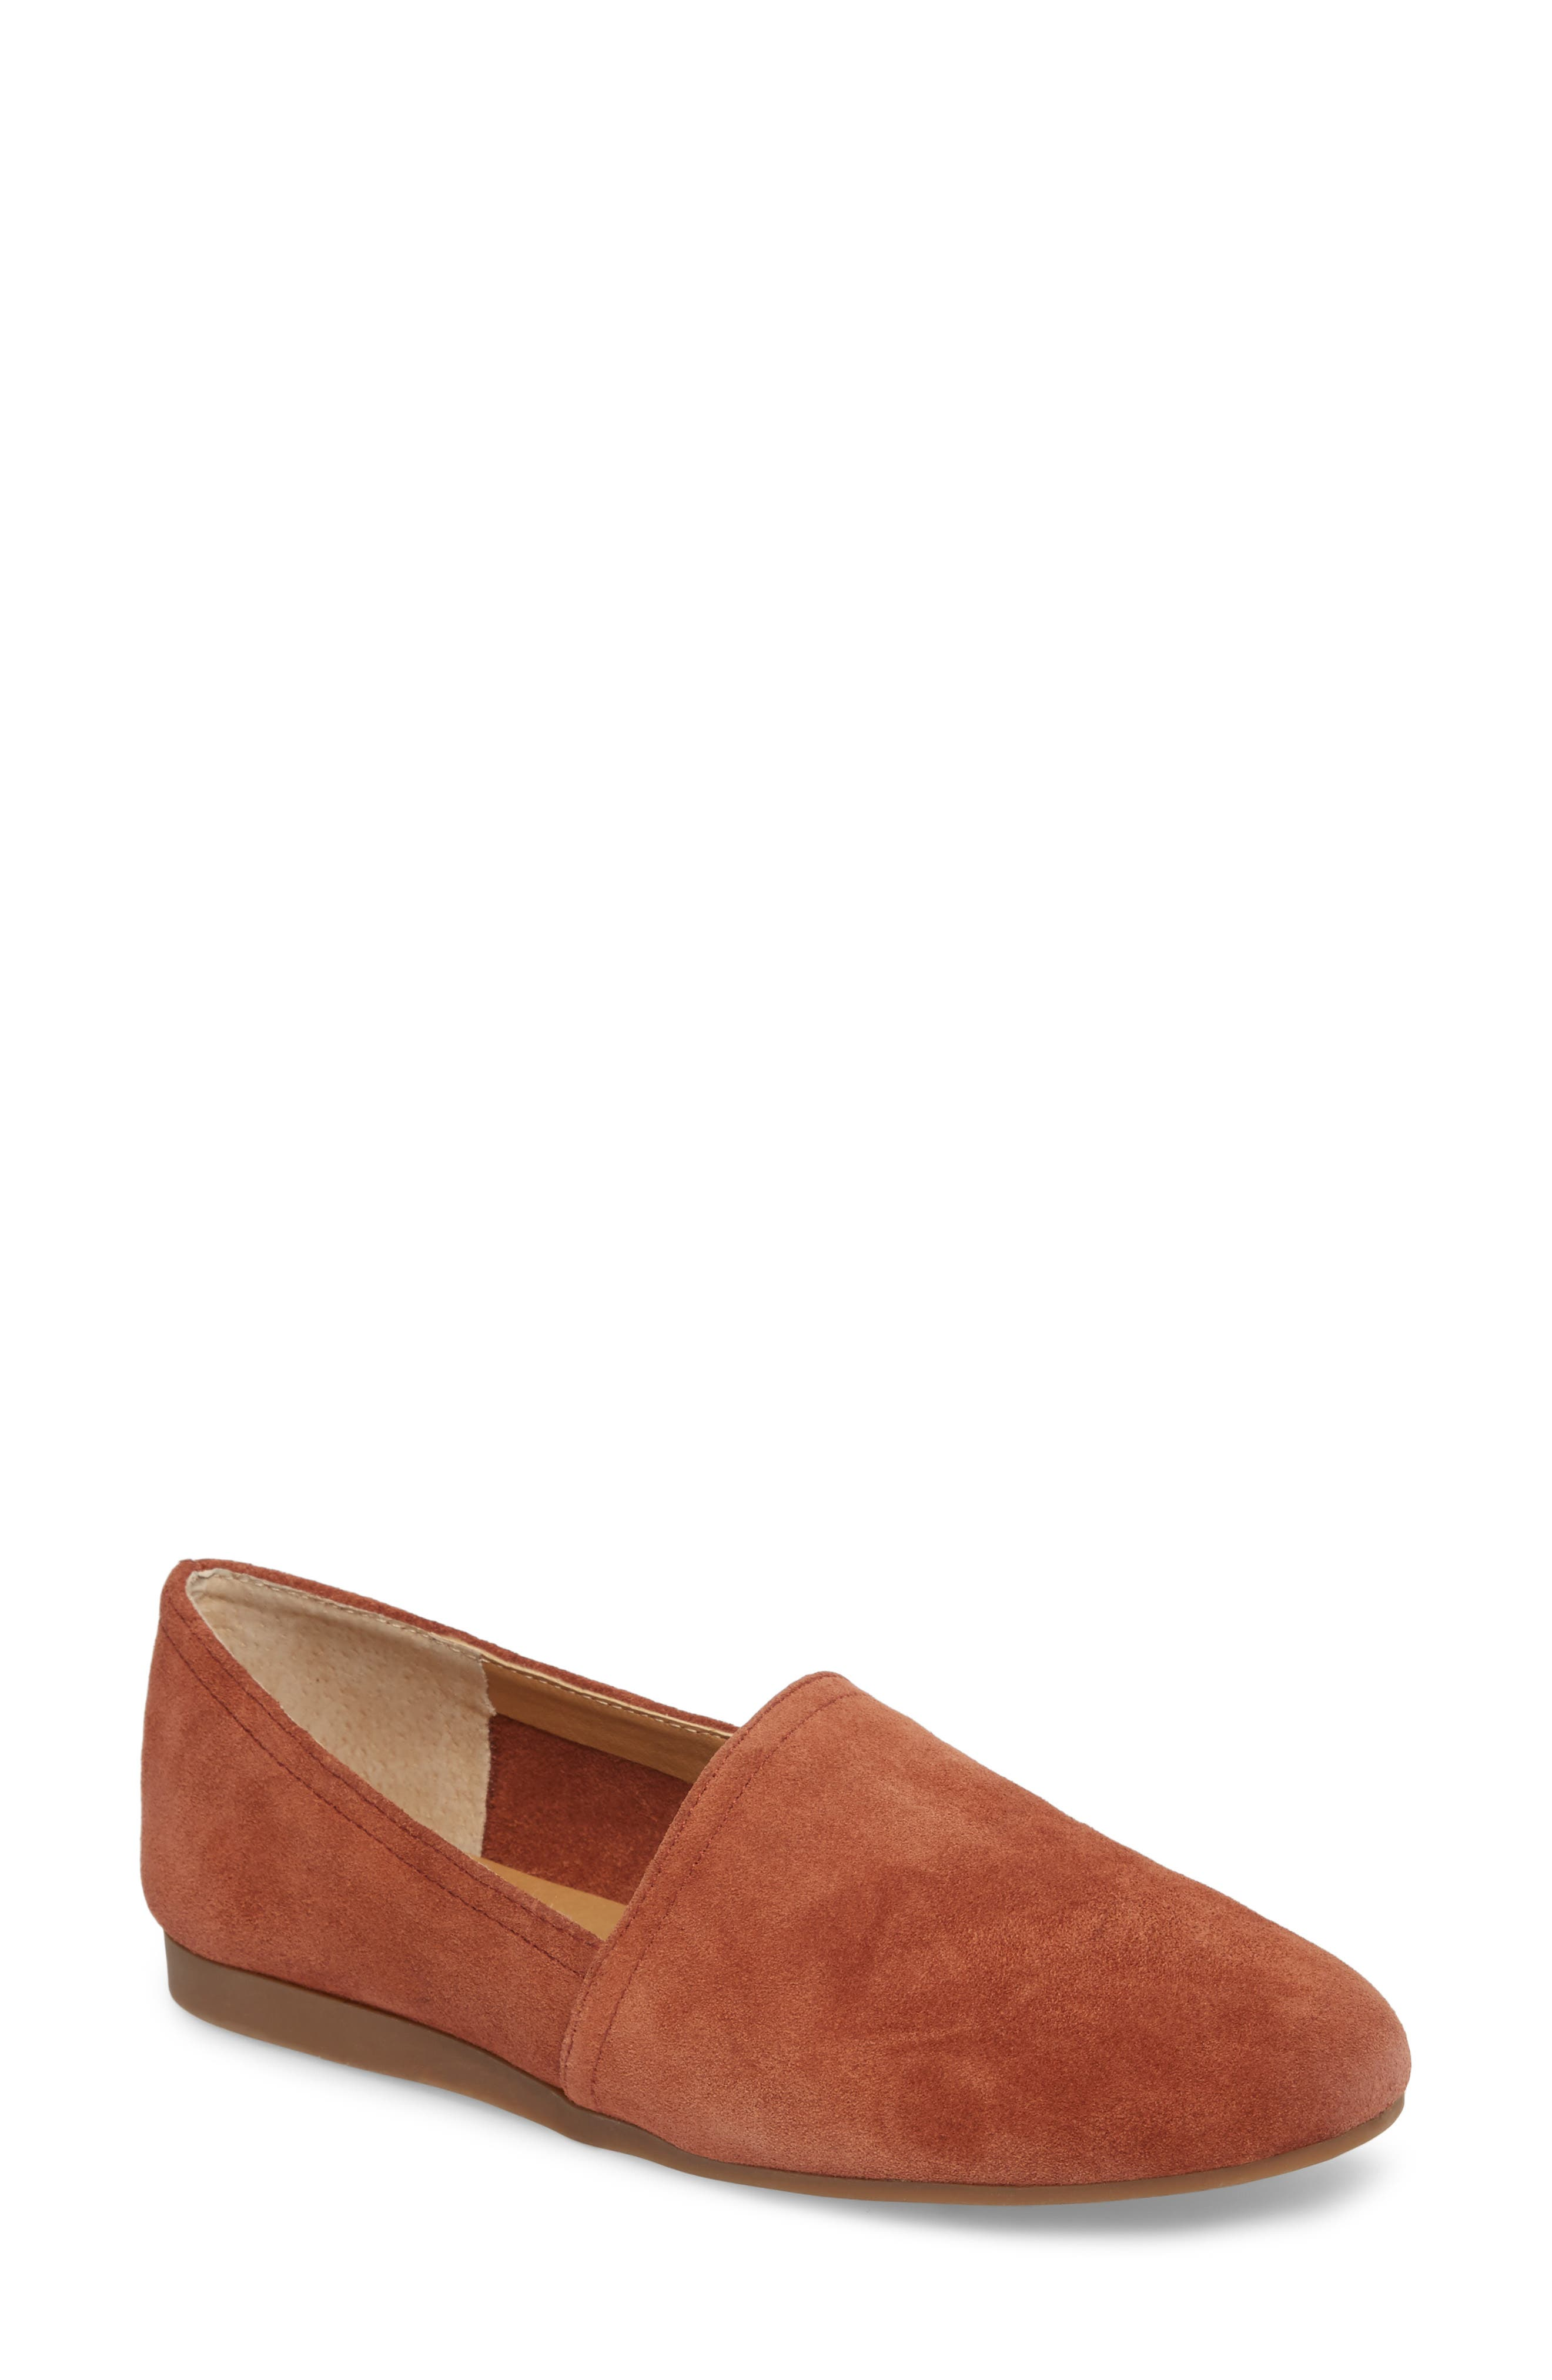 Brettany Loafer,                             Main thumbnail 3, color,